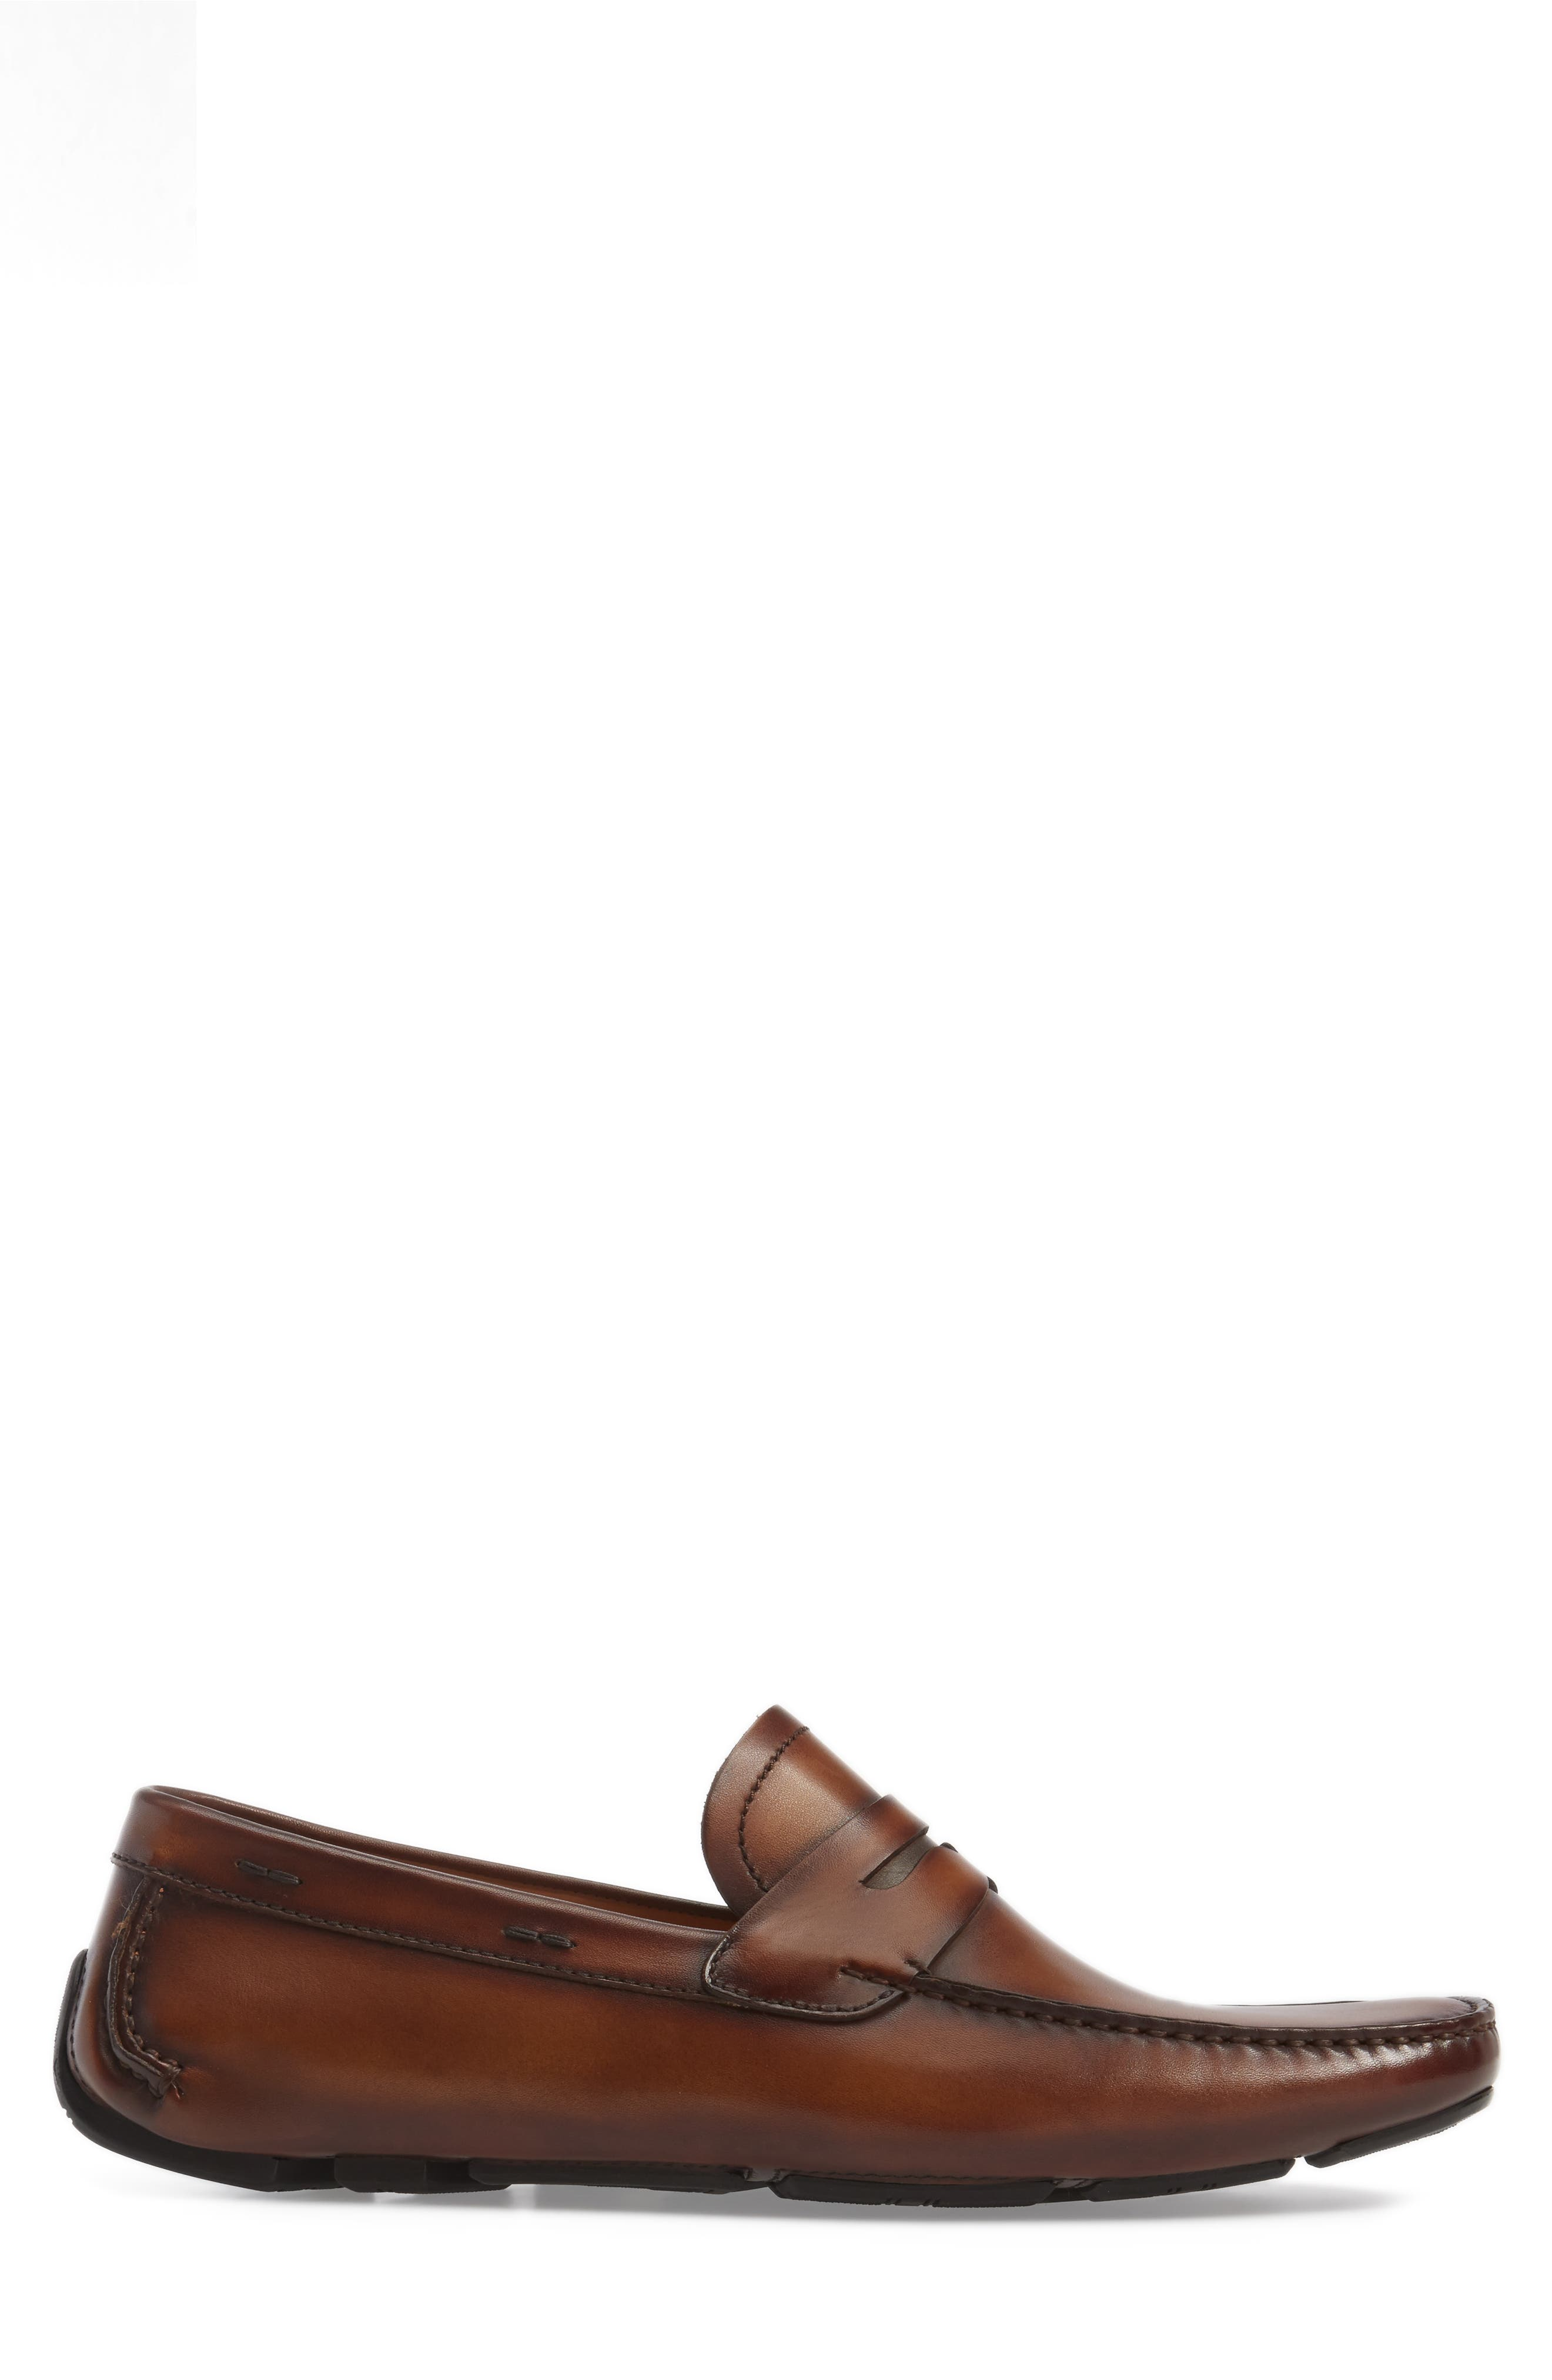 'Dylan' Leather Driving Shoe,                             Alternate thumbnail 17, color,